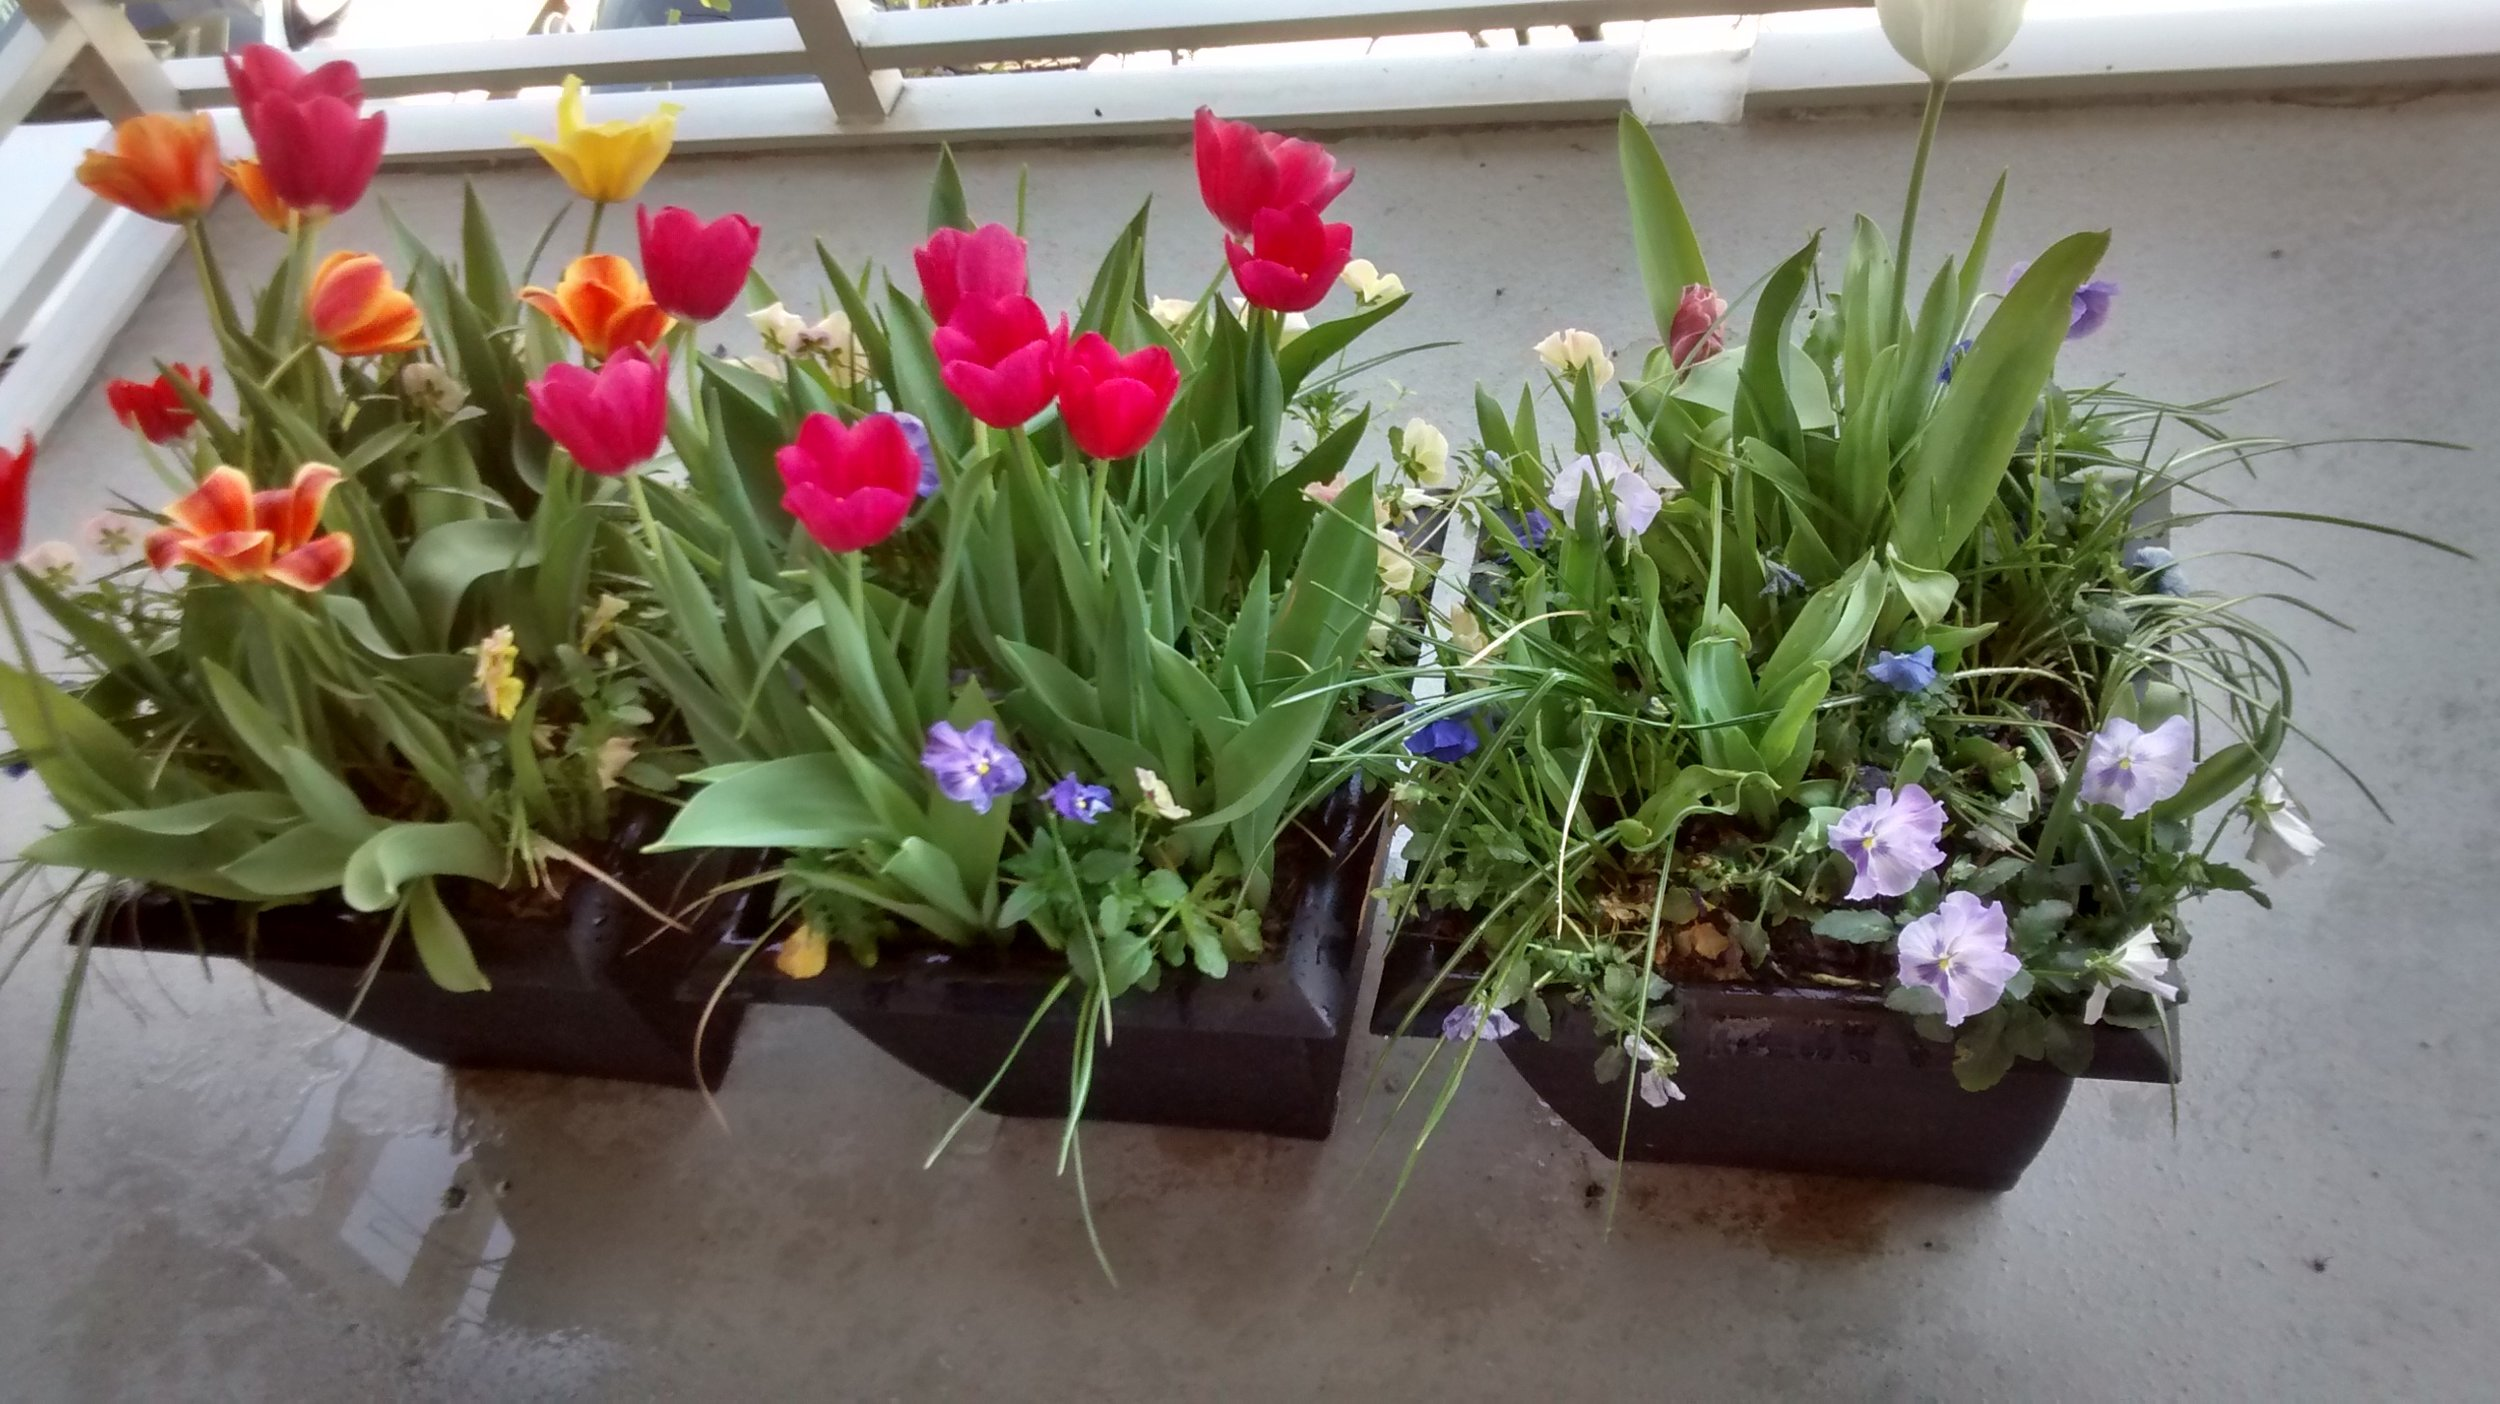 Small terrace garden for year round flowers.